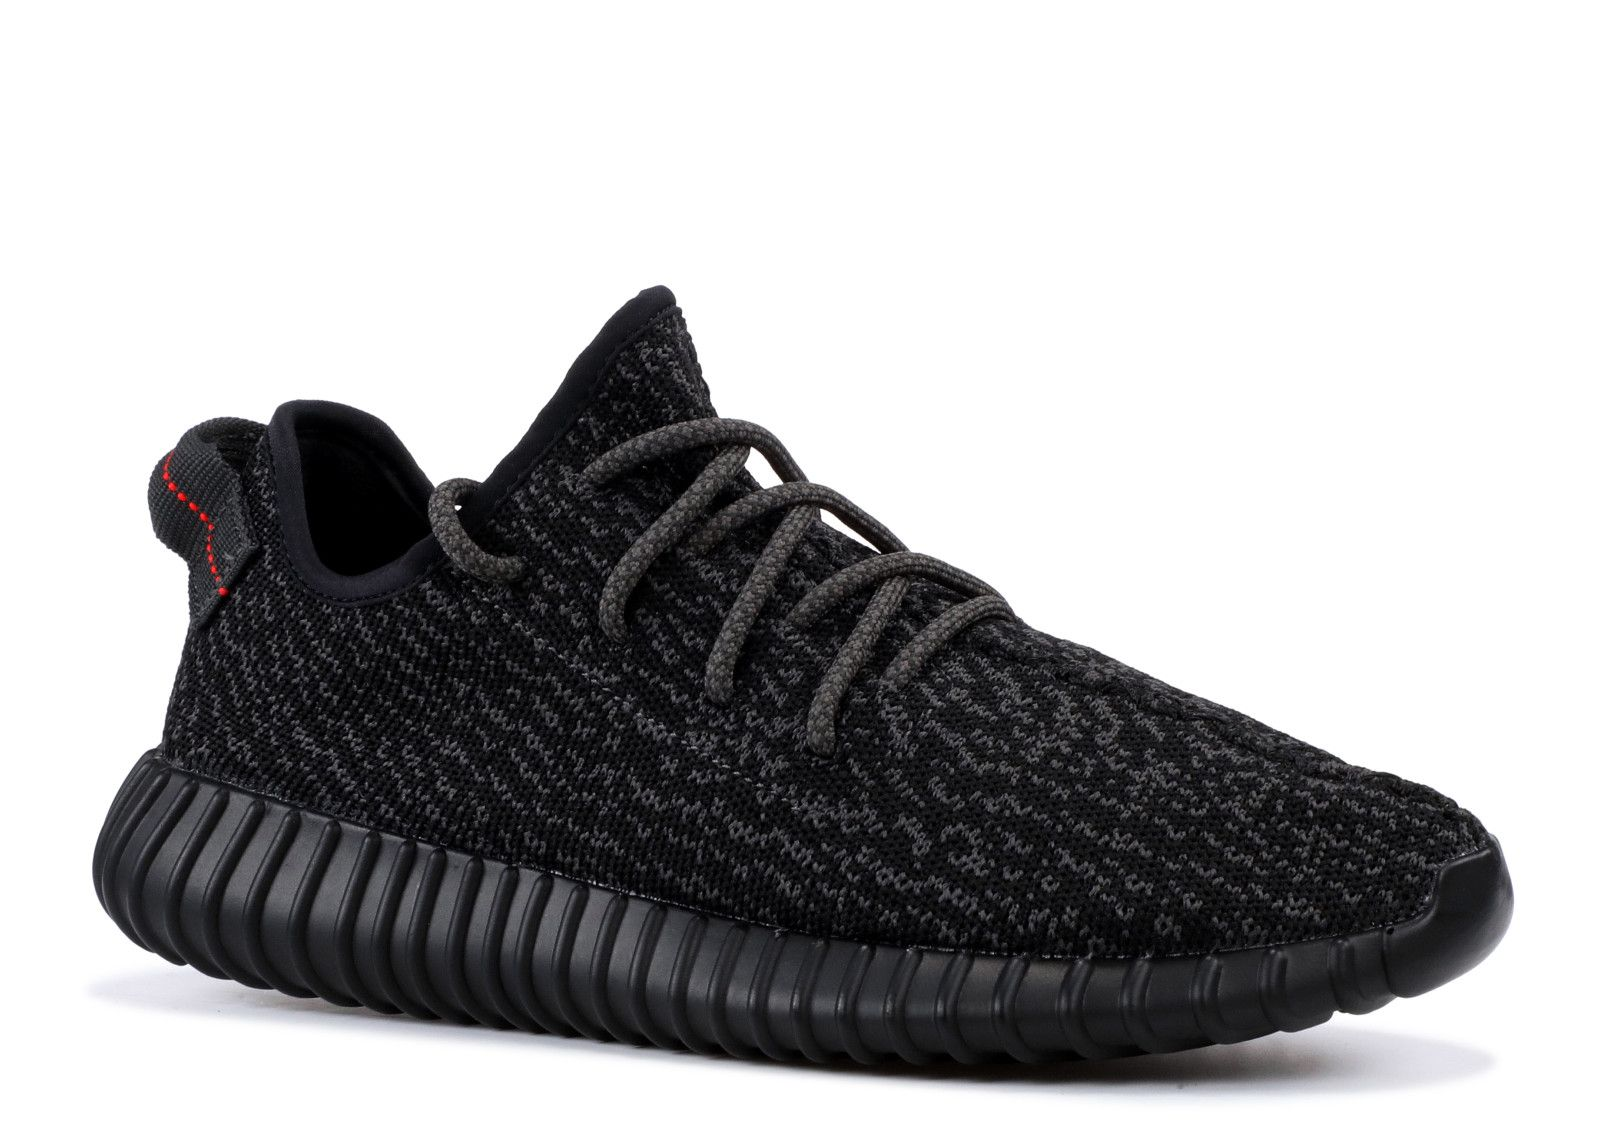 ec1a6911e41 Adidas Yeezy Boost 350 Pirate Black Running Shoes - Buy Adidas Yeezy Boost  350 Pirate Black Running Shoes Online at Best Prices in India on Snapdeal